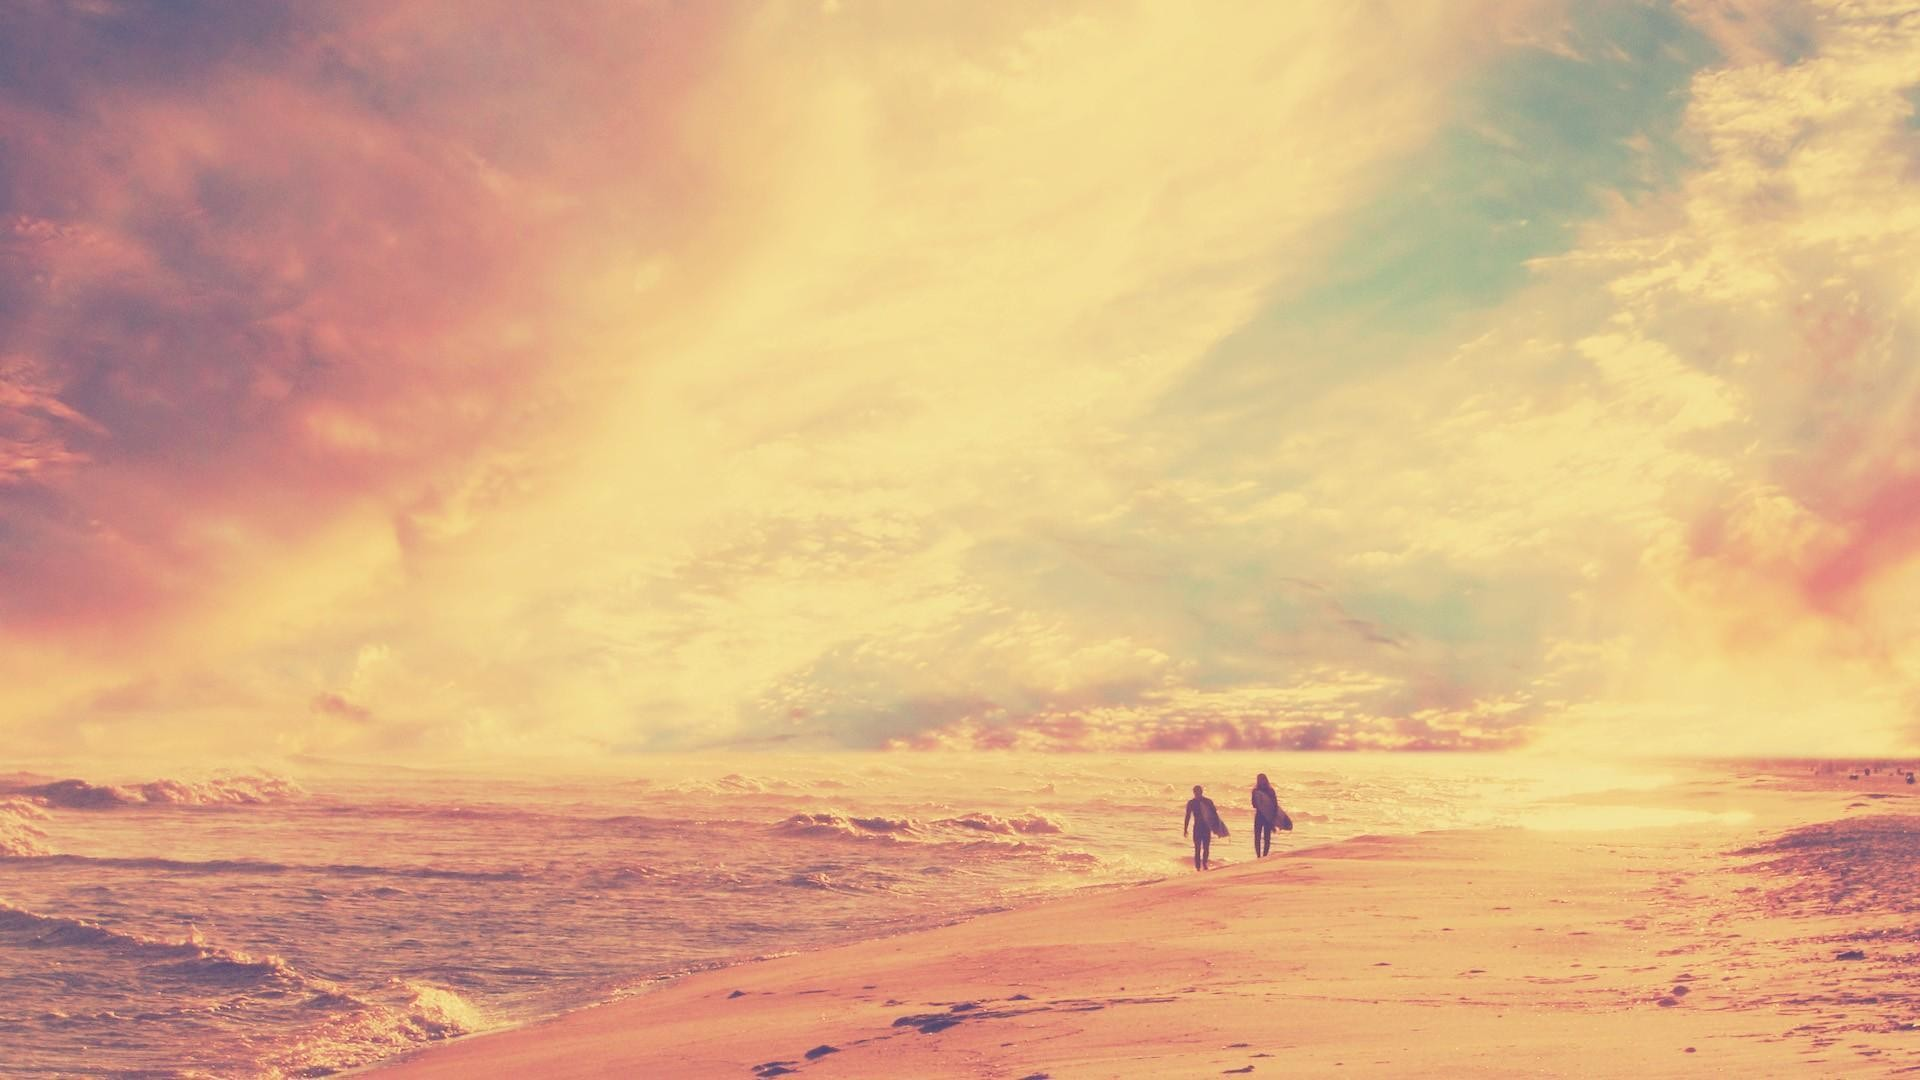 Wallpapers For > Tumblr Backgrounds Beach Surf